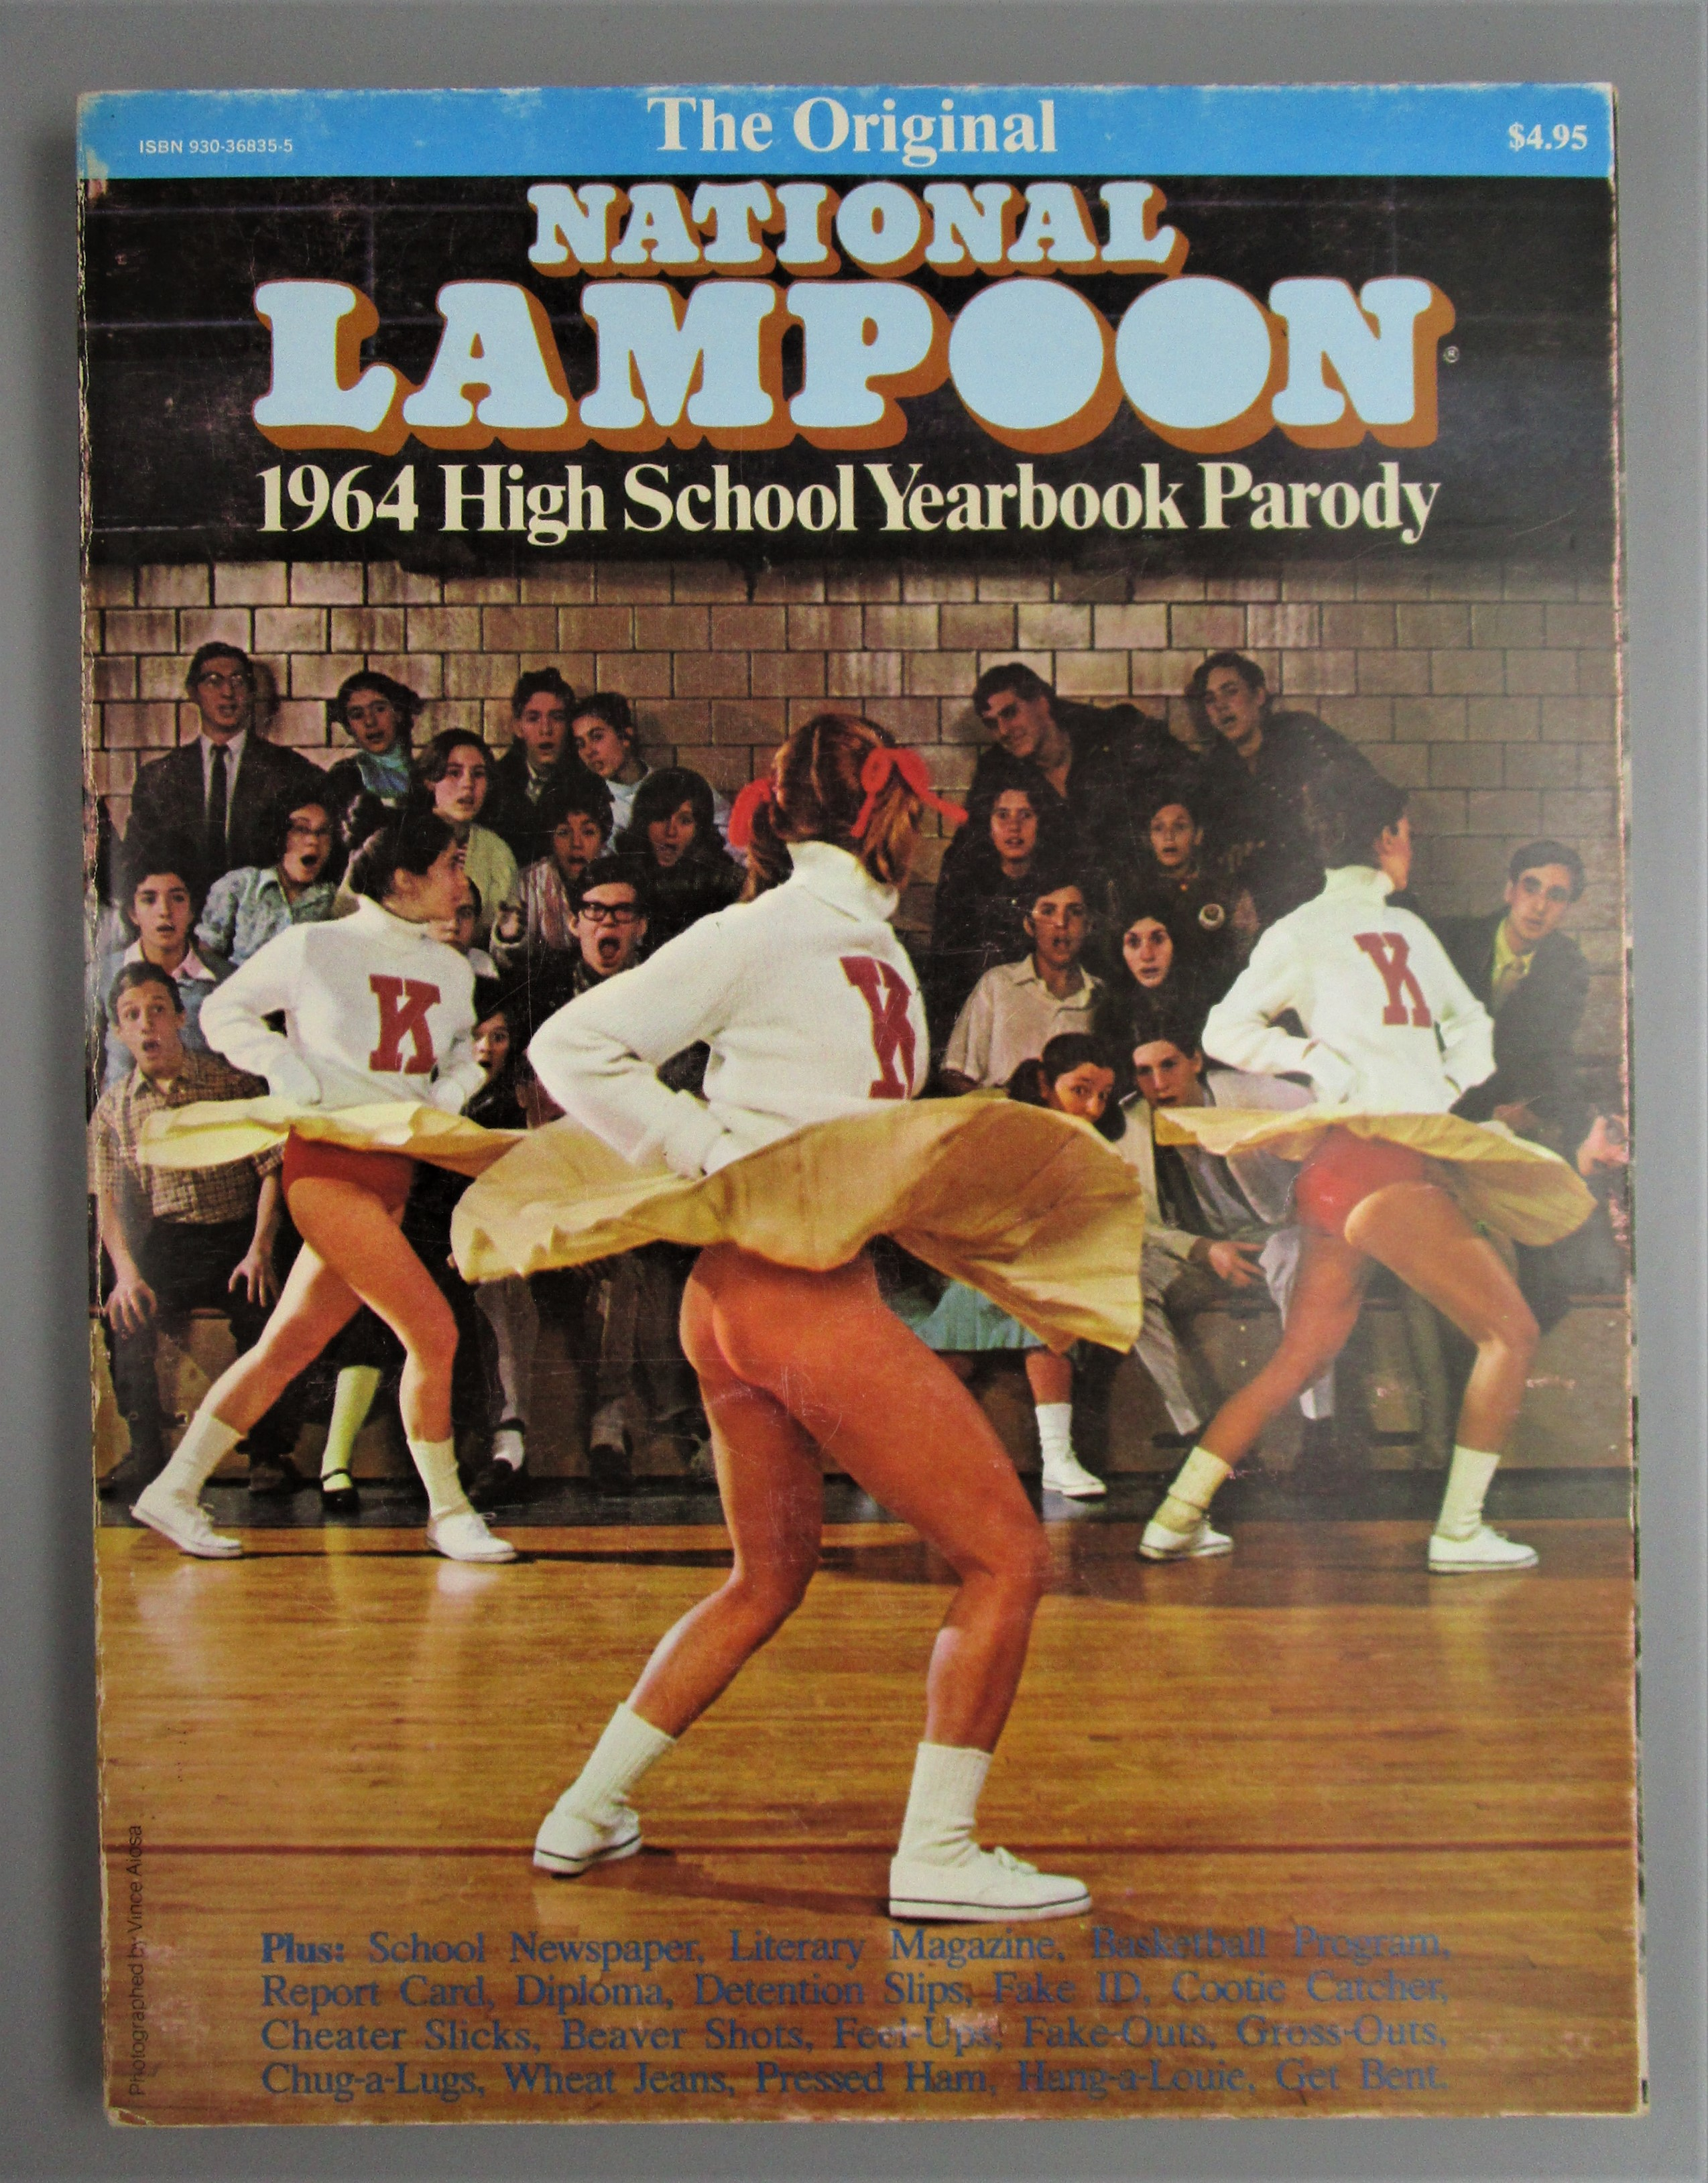 NATIONAL LAMPOON: 1964 HIGH SCHOOL YEARBOOK PARODY, by  O'Rourke & Kenney - 1979 [4th Ed]